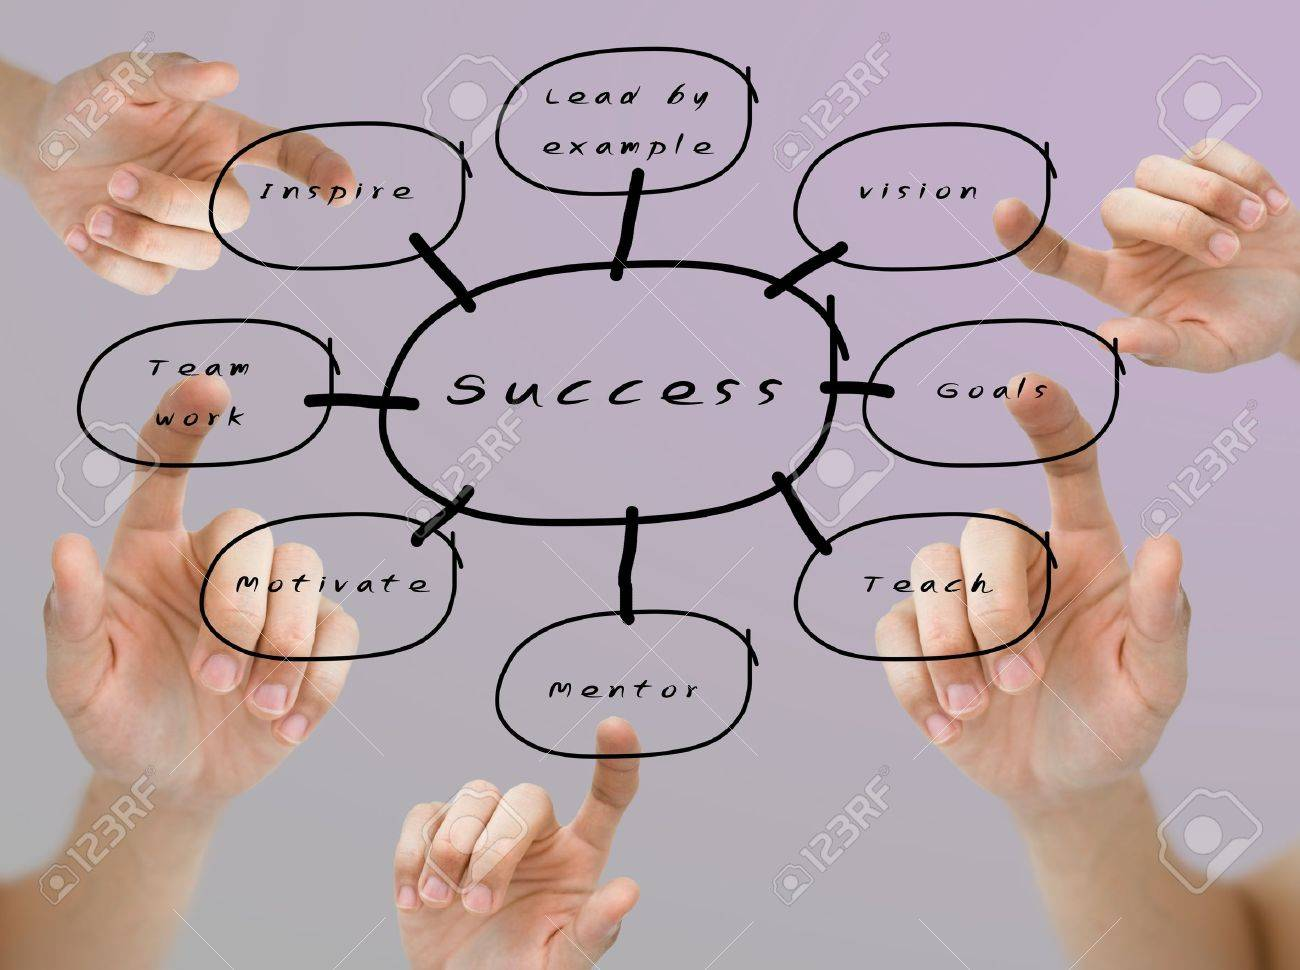 hand pointed the word of vision goals mentor team work and hand pointed the word of vision goals mentor team work and inspire on